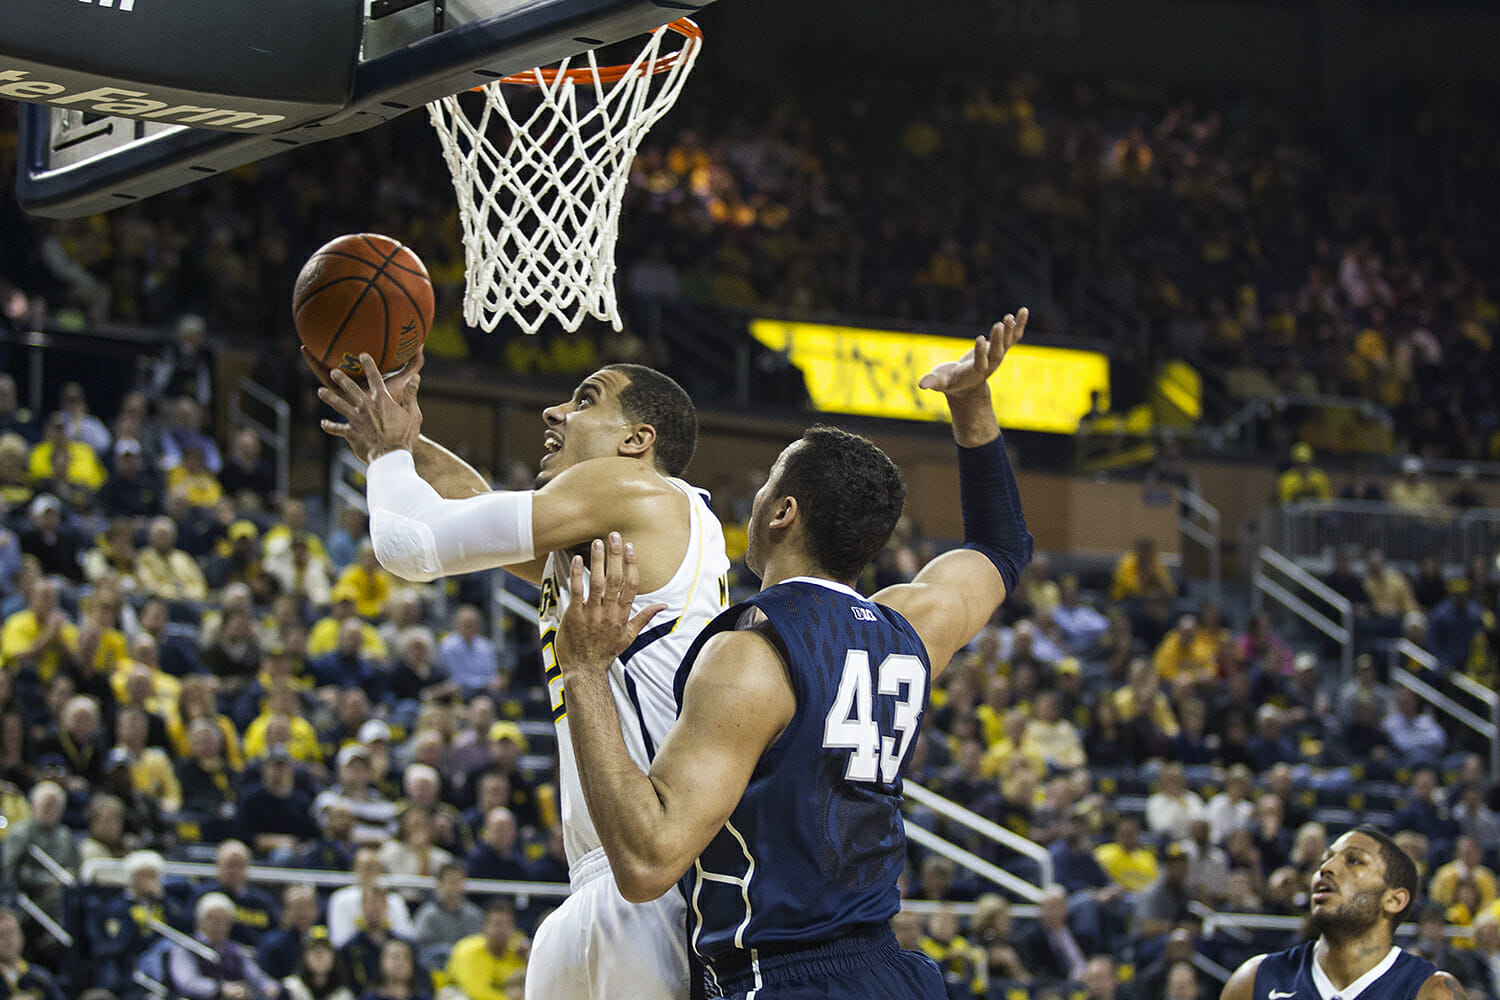 Michigan 80, Penn State 67 – #2